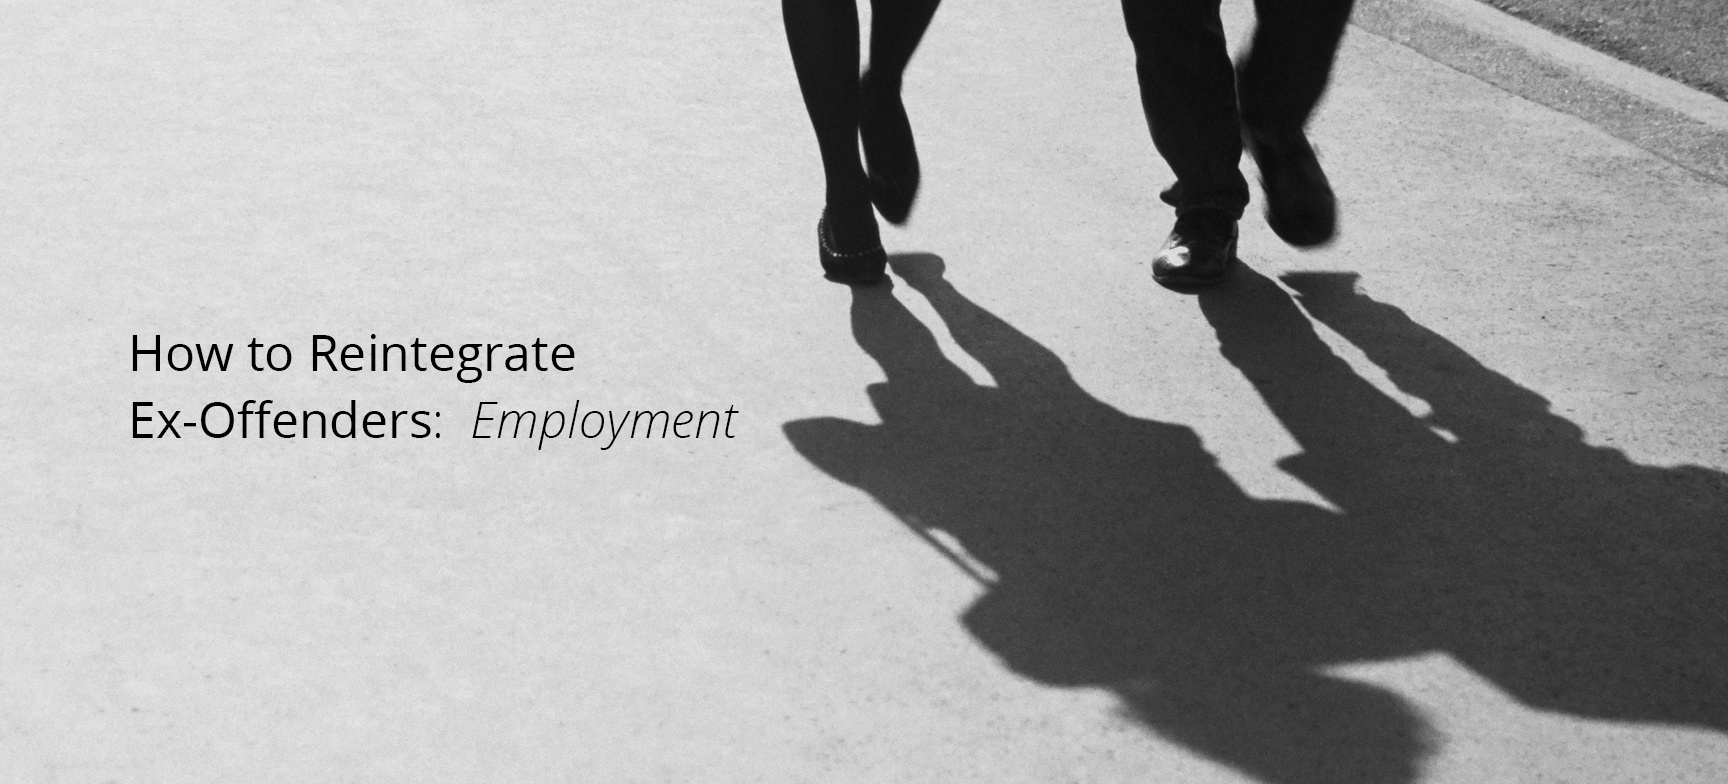 How To Reintegrate Ex Offenders Employment